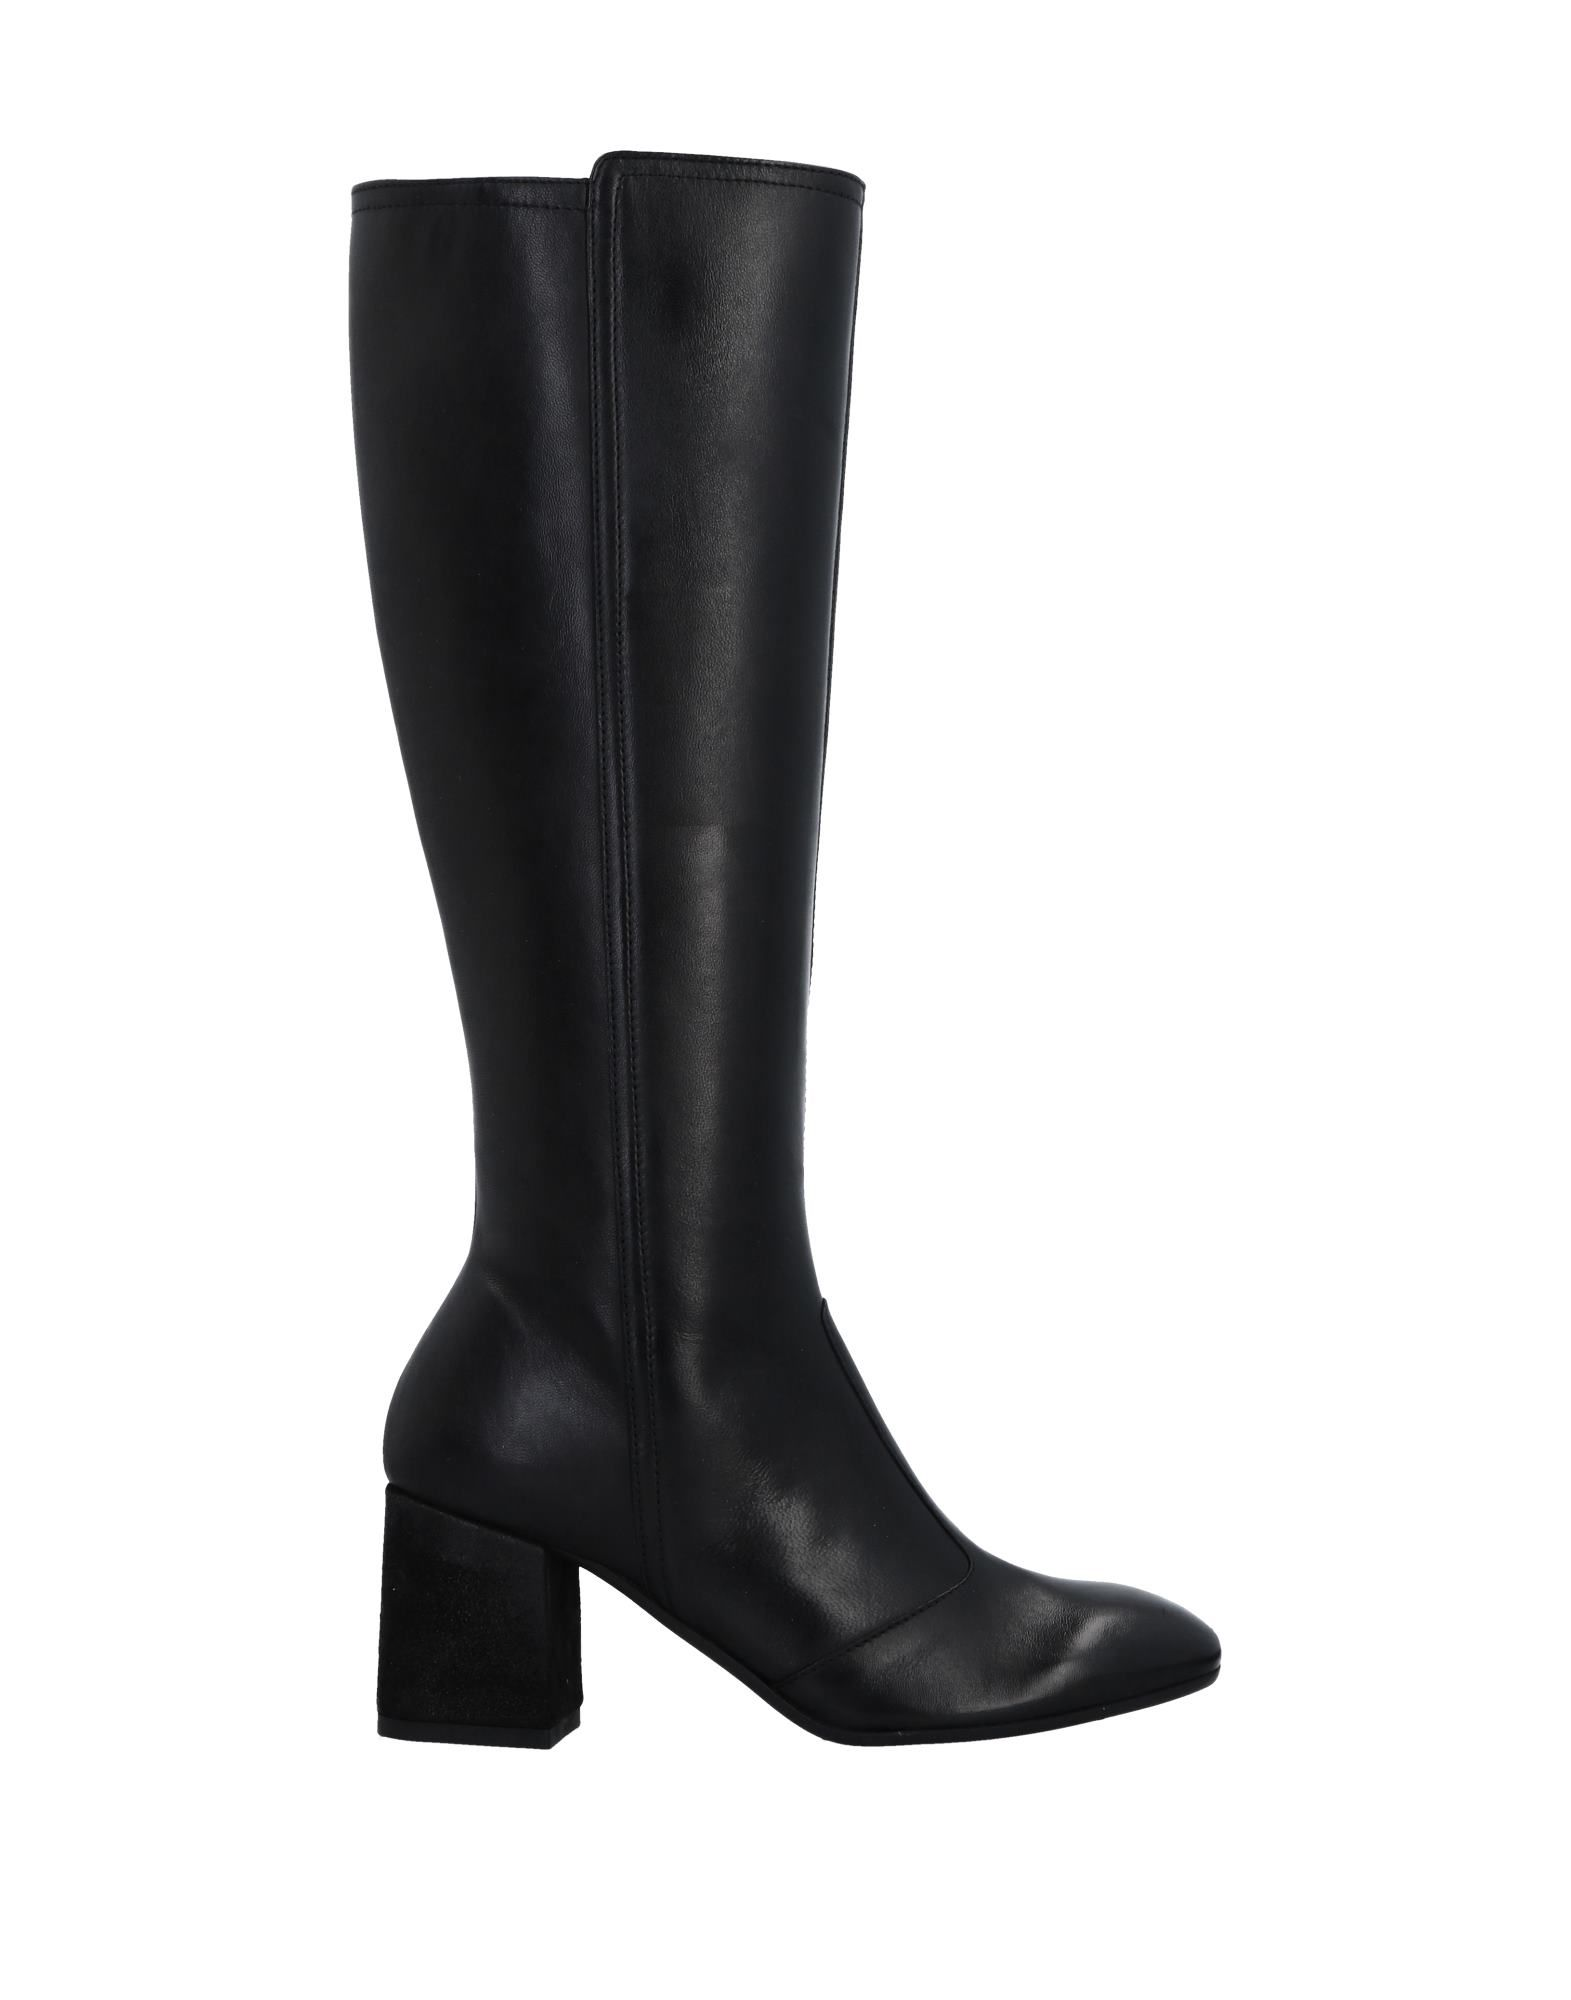 MANAS Boots in Black